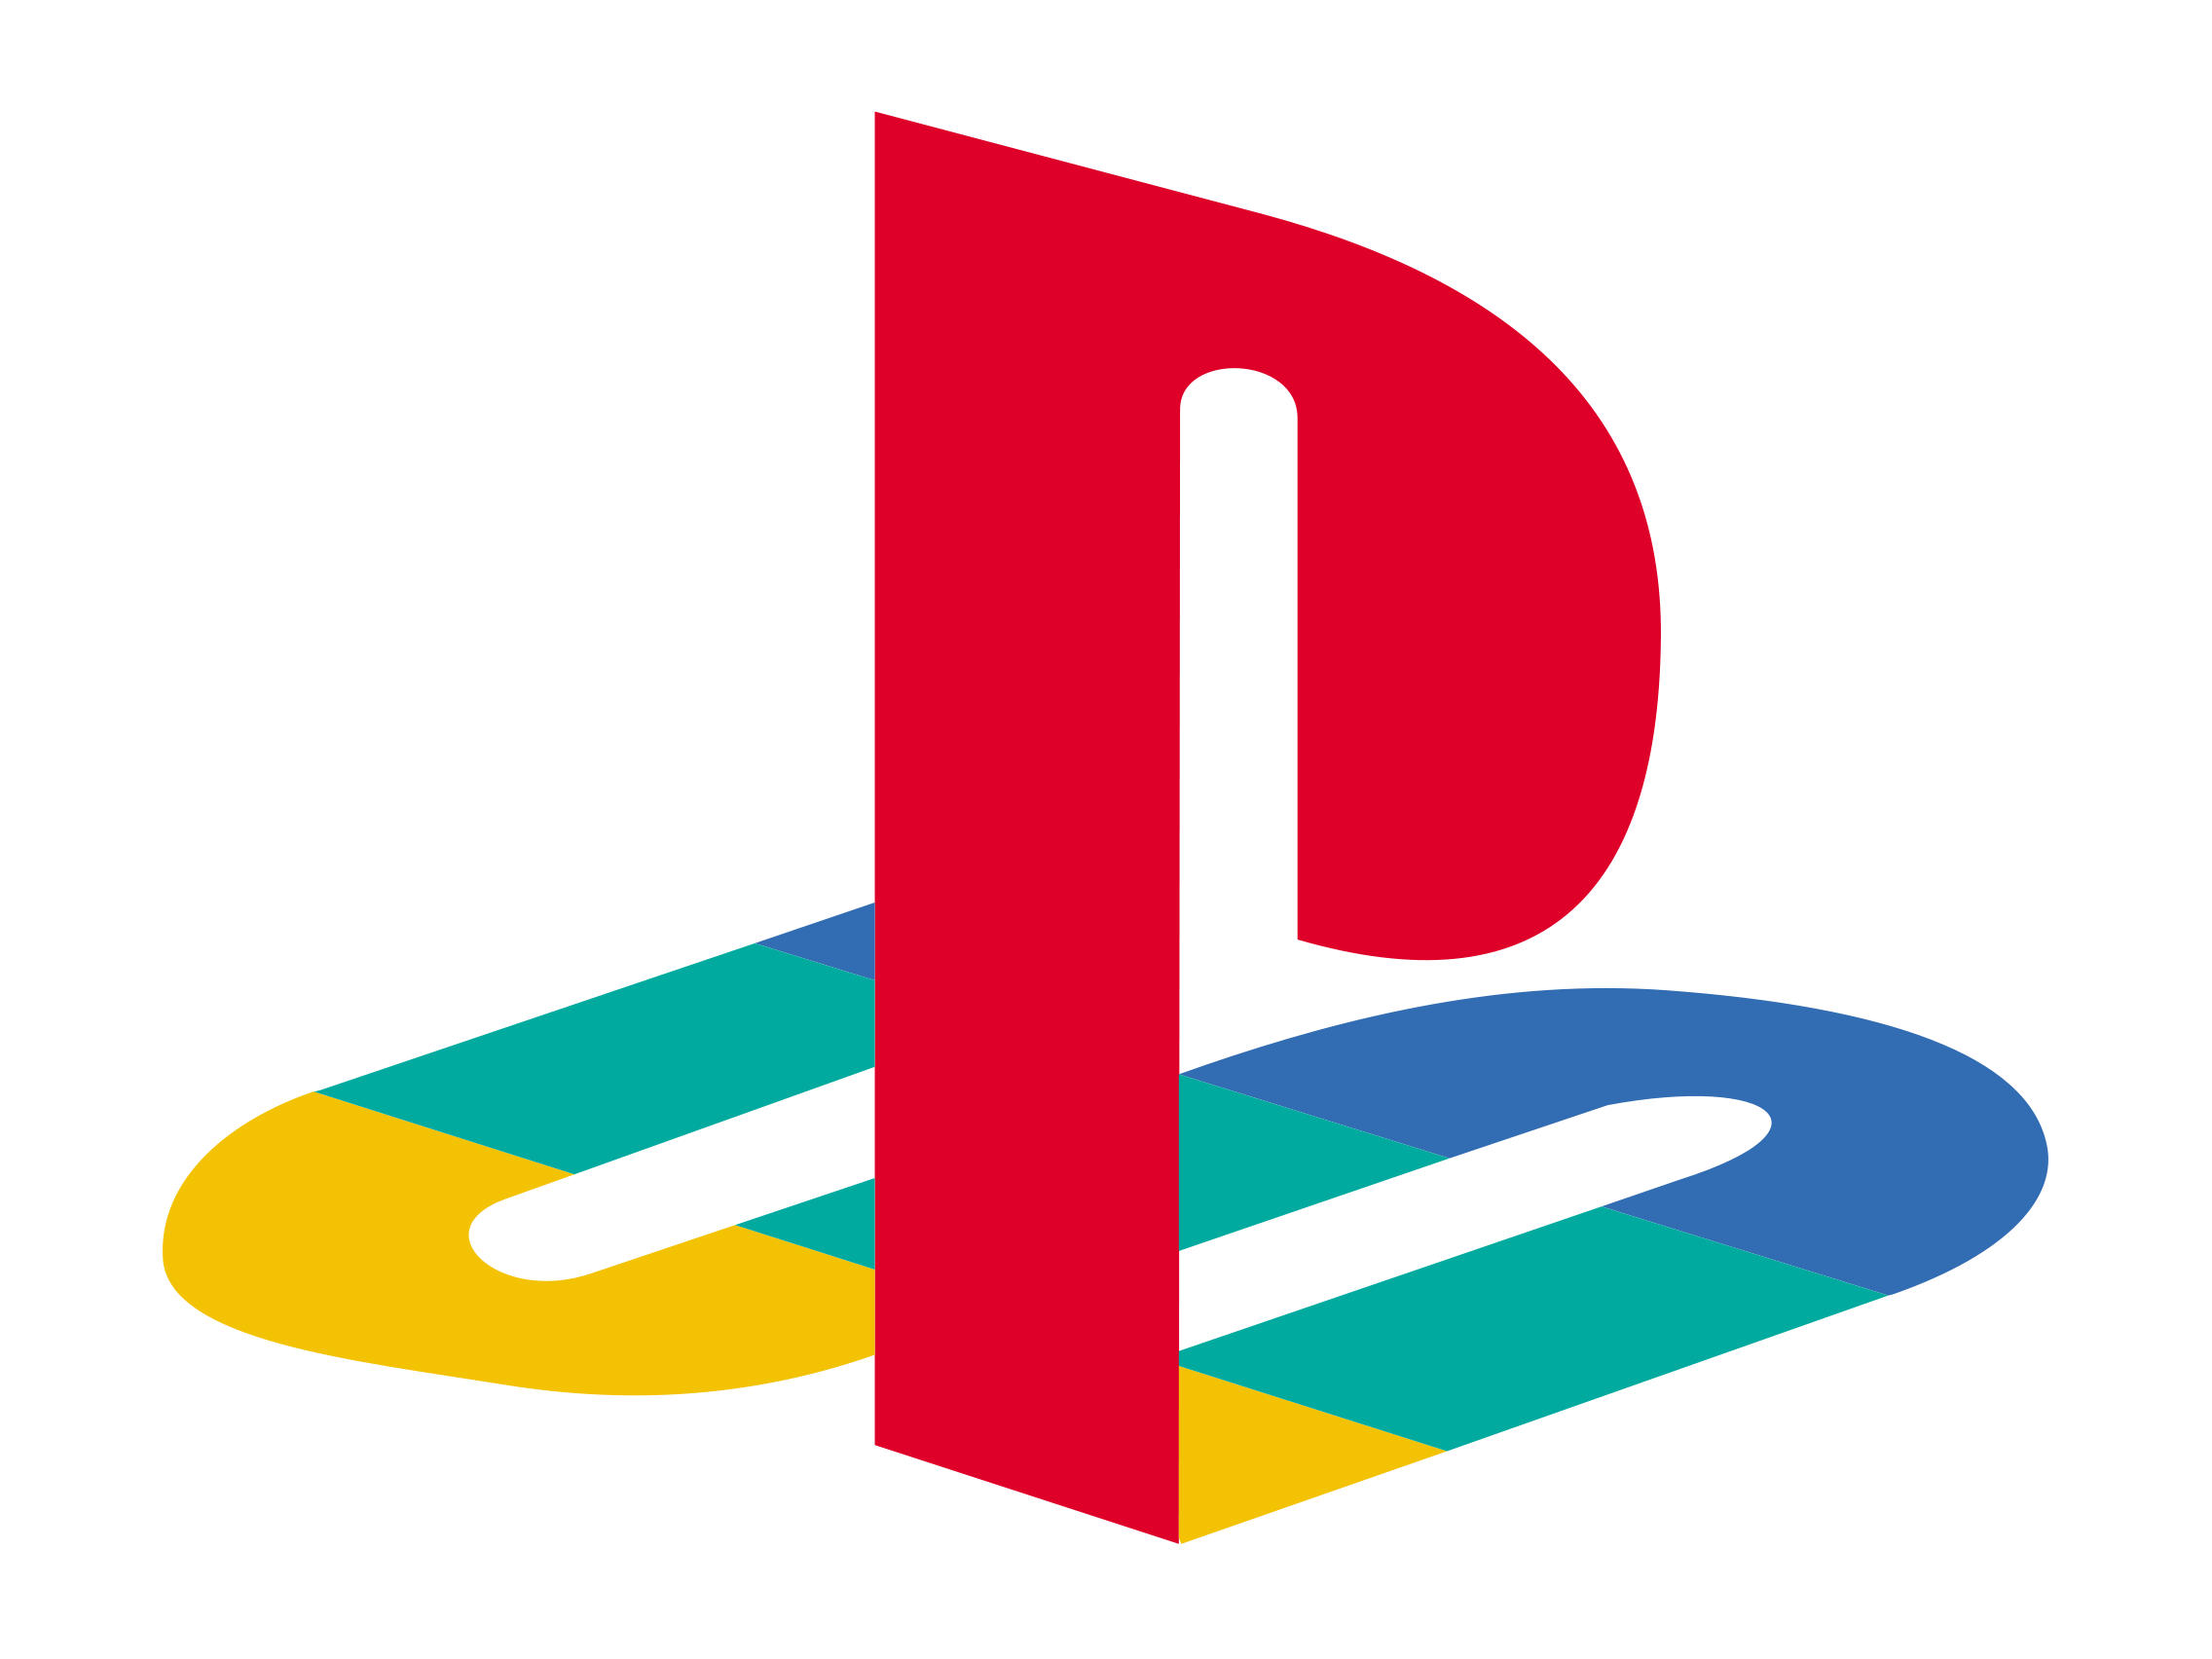 http://logok.org/wp-content/uploads/2014/07/Playstation-logo-colour.png